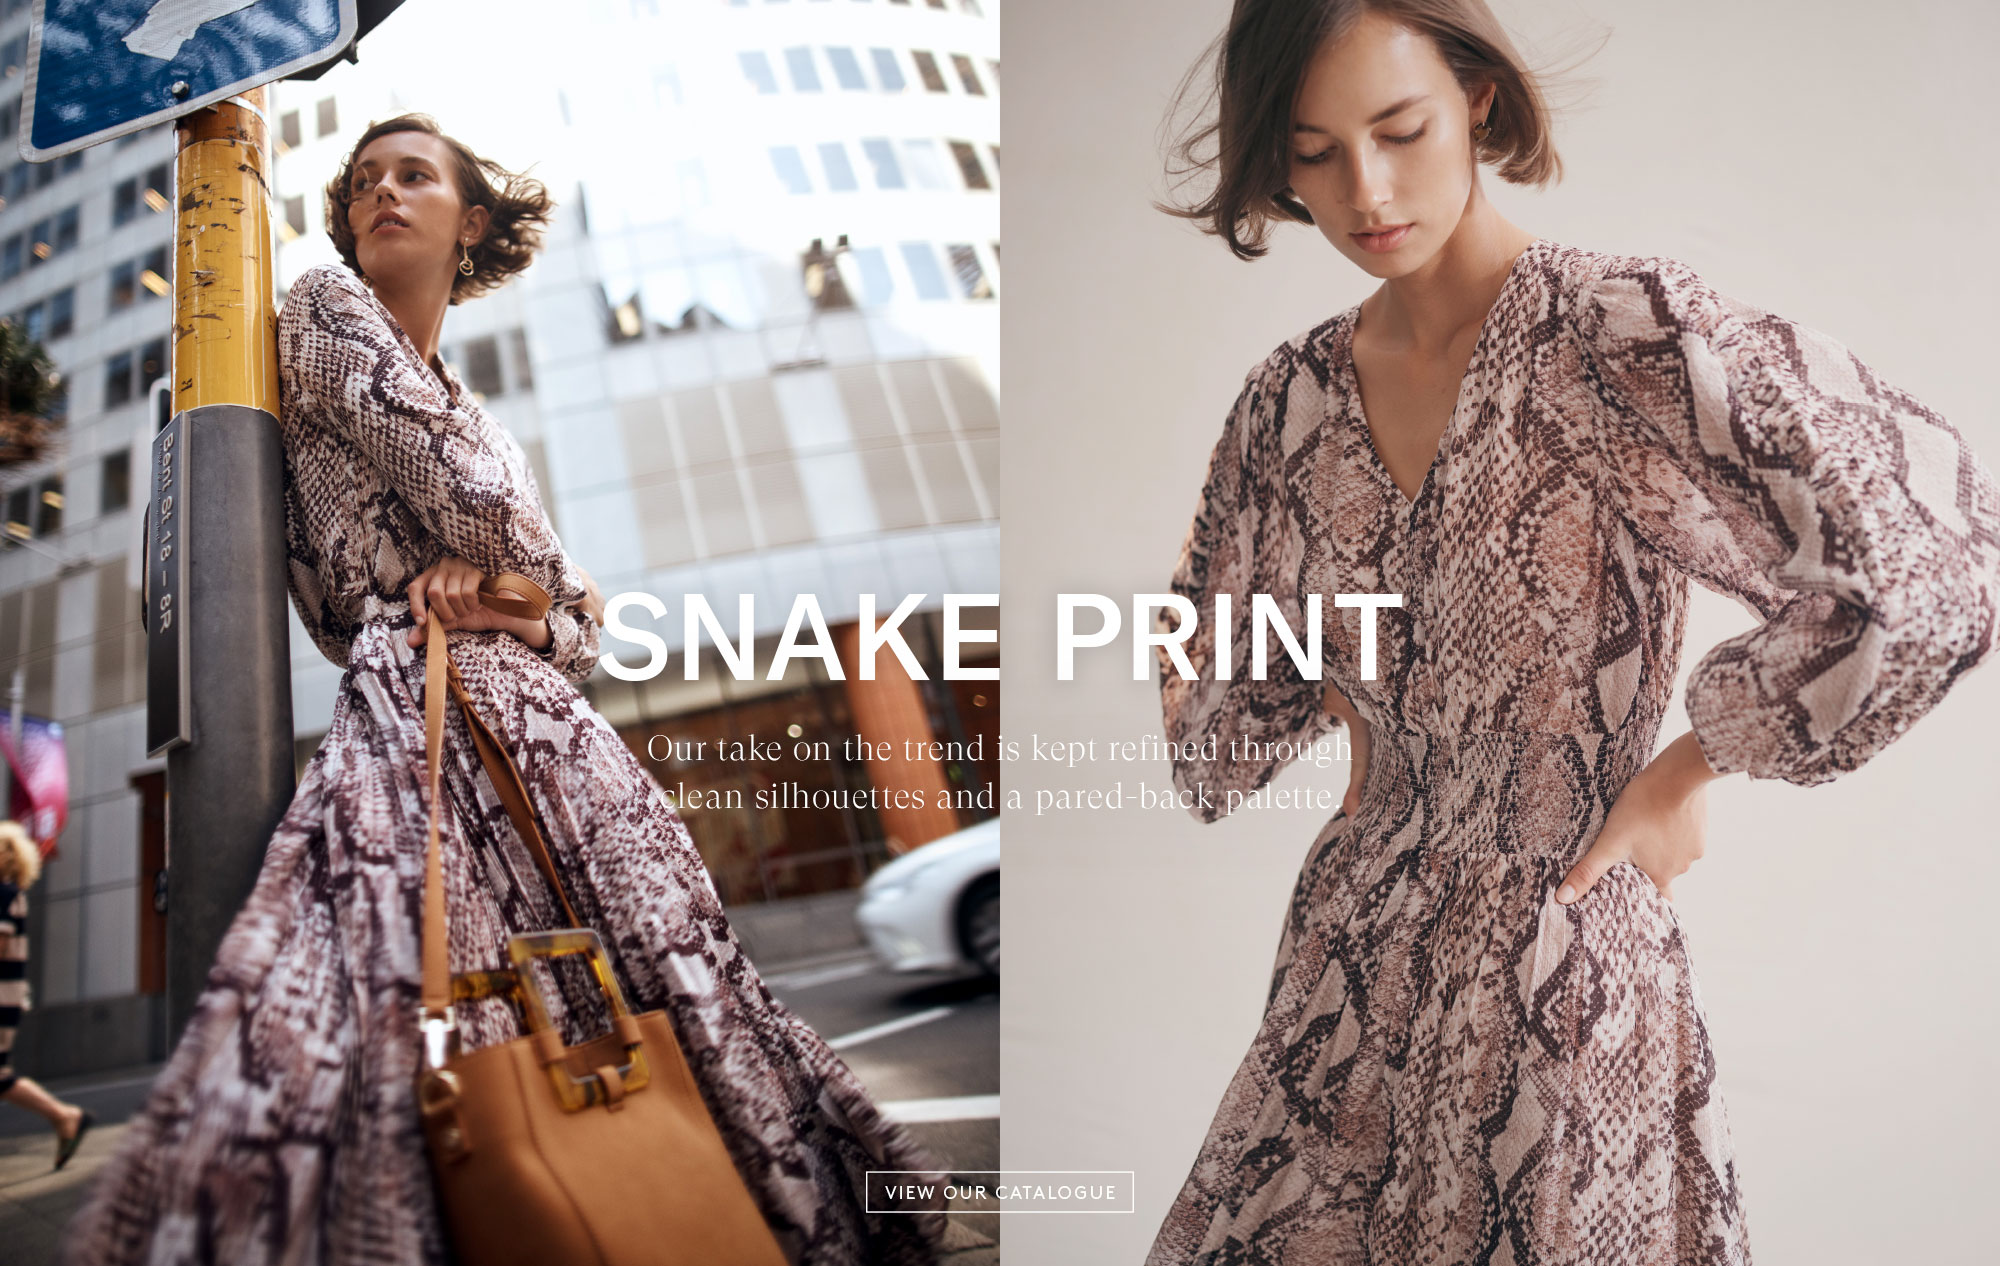 2019 Autumn Catalogue - Snake Print - Our take on the trend is kept refined through clean silhouettes and a pared-back palette. - View Our Catalogue